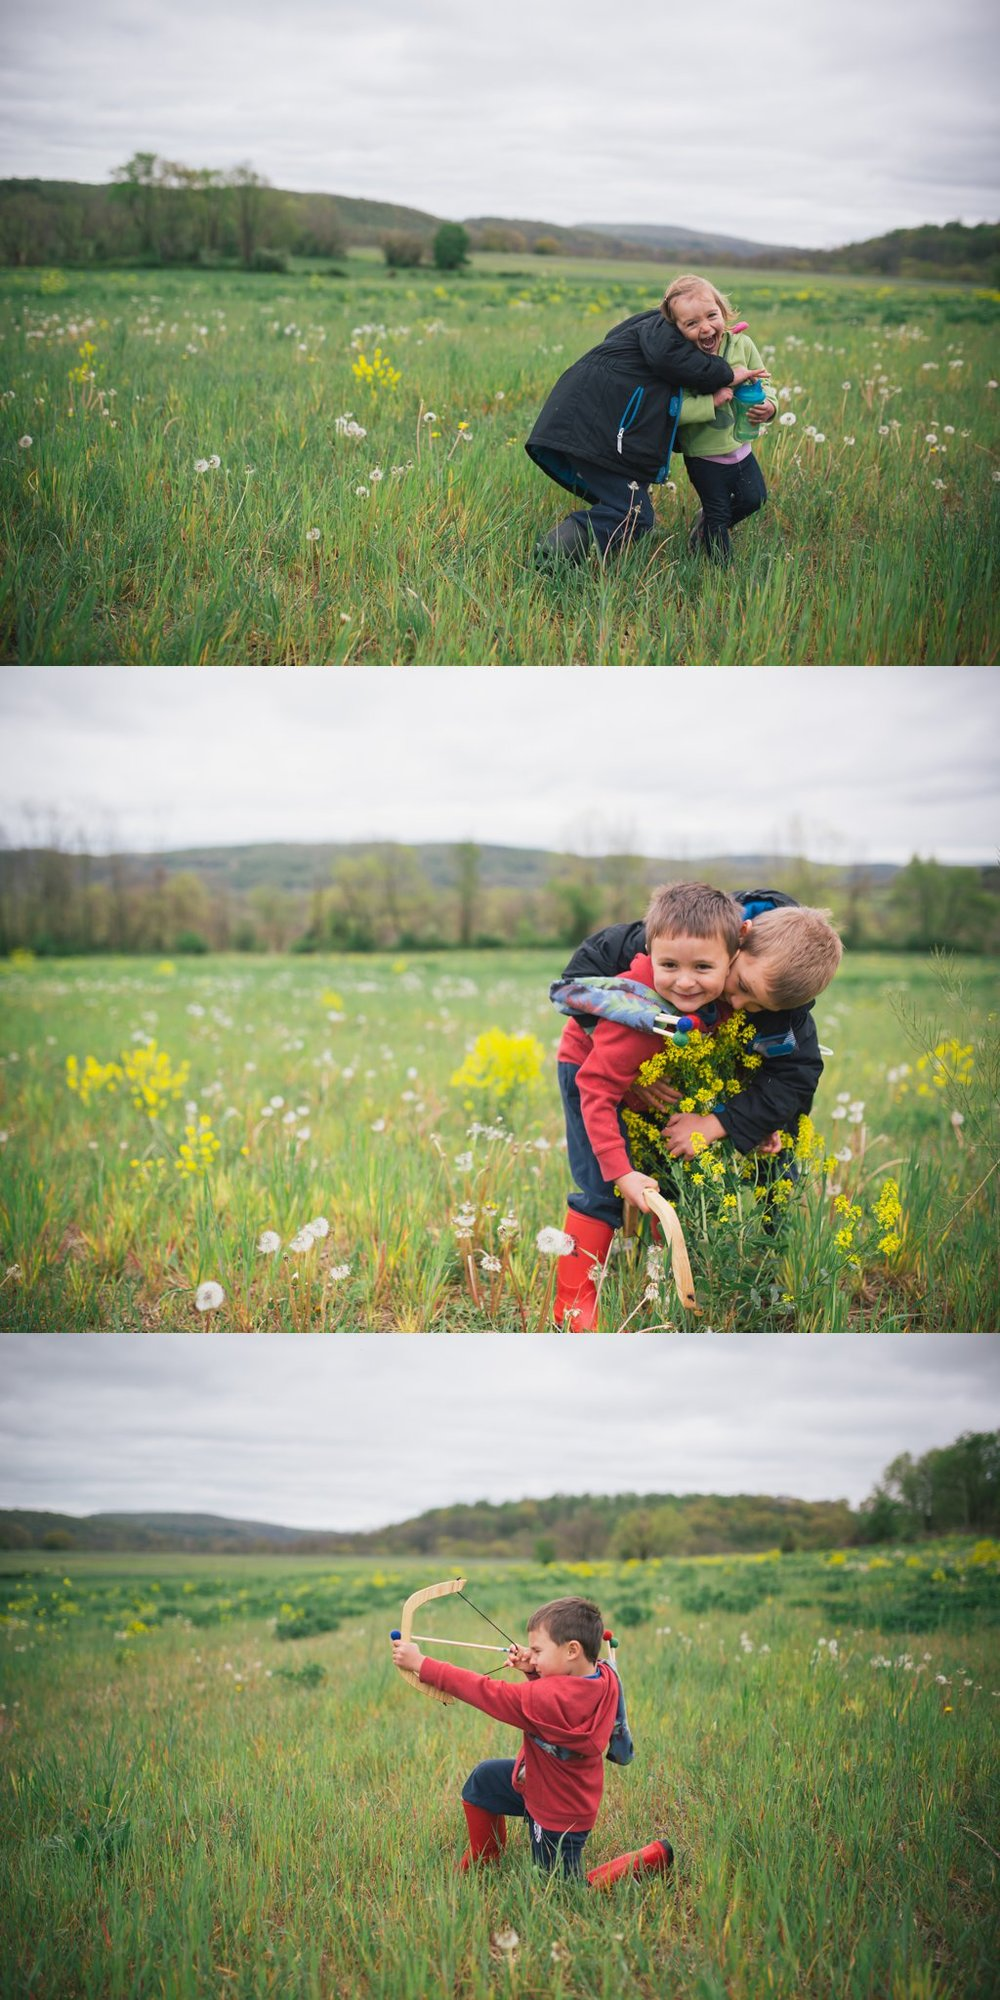 Romping in the fields of wildflowers. Our days are so so full.